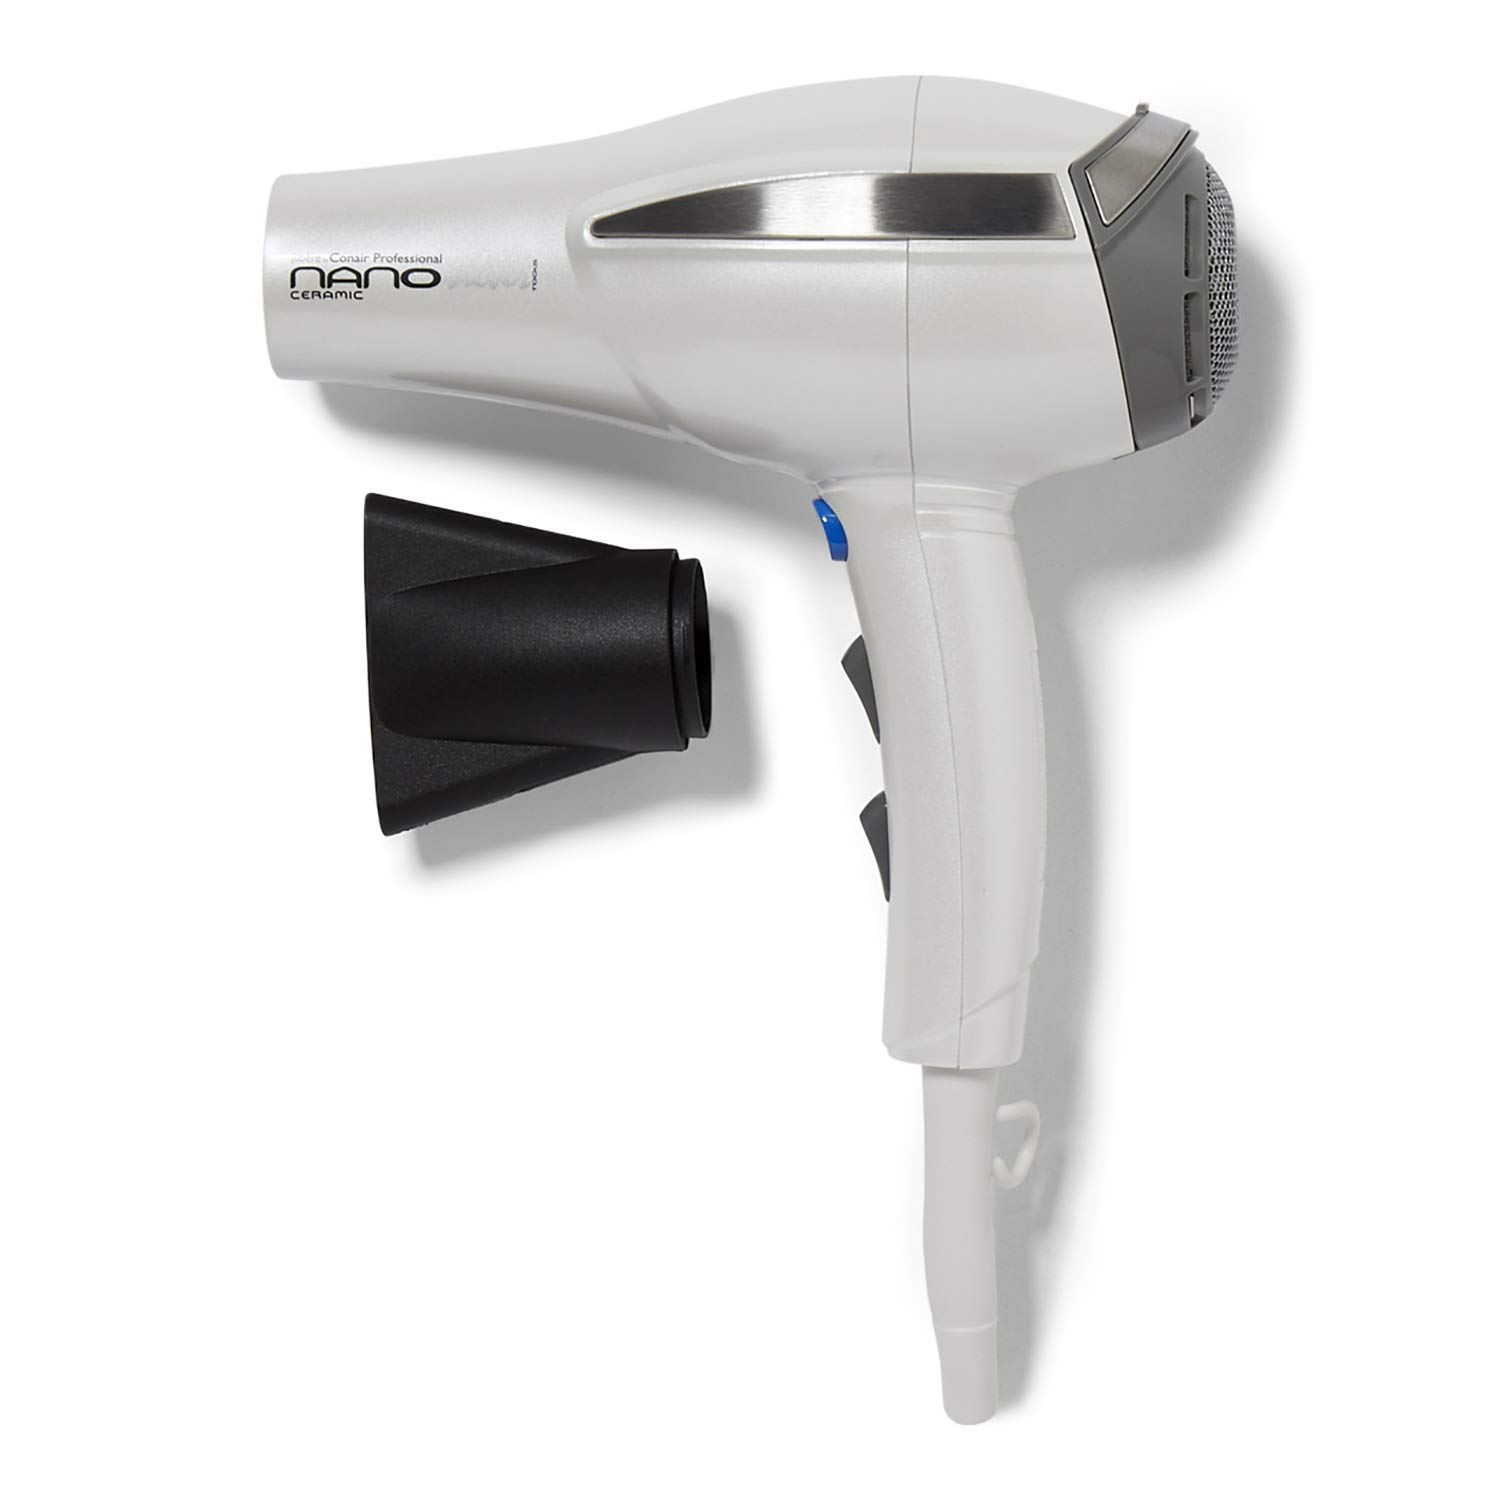 Jilbere by Conair Professional Nano Silver Dryer, 2000 Watt